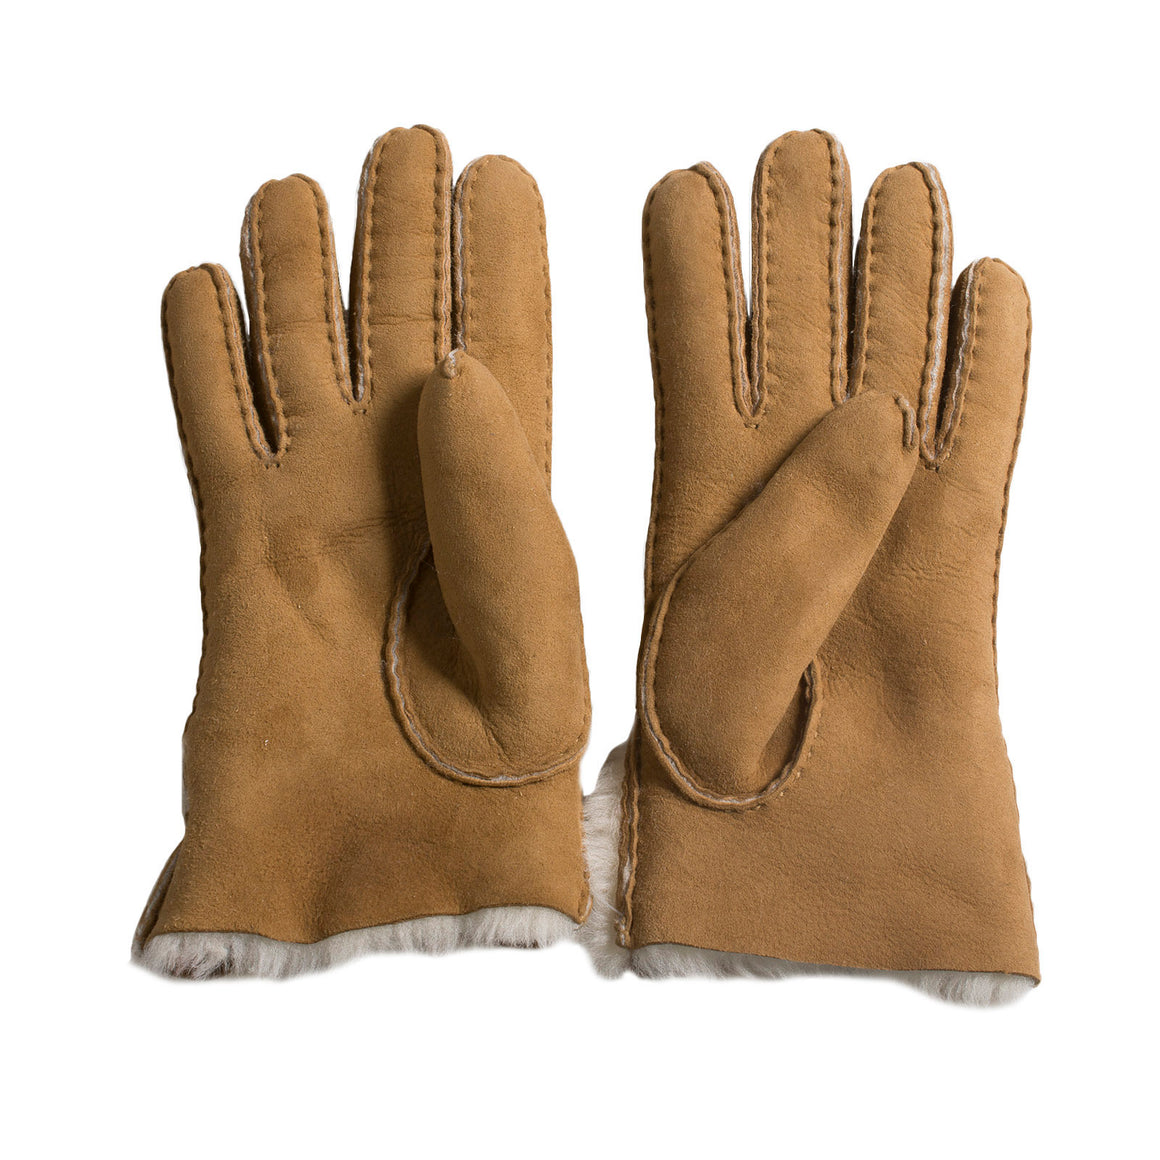 UGG Sheepskin Bow Chestnut Gloves - Women's